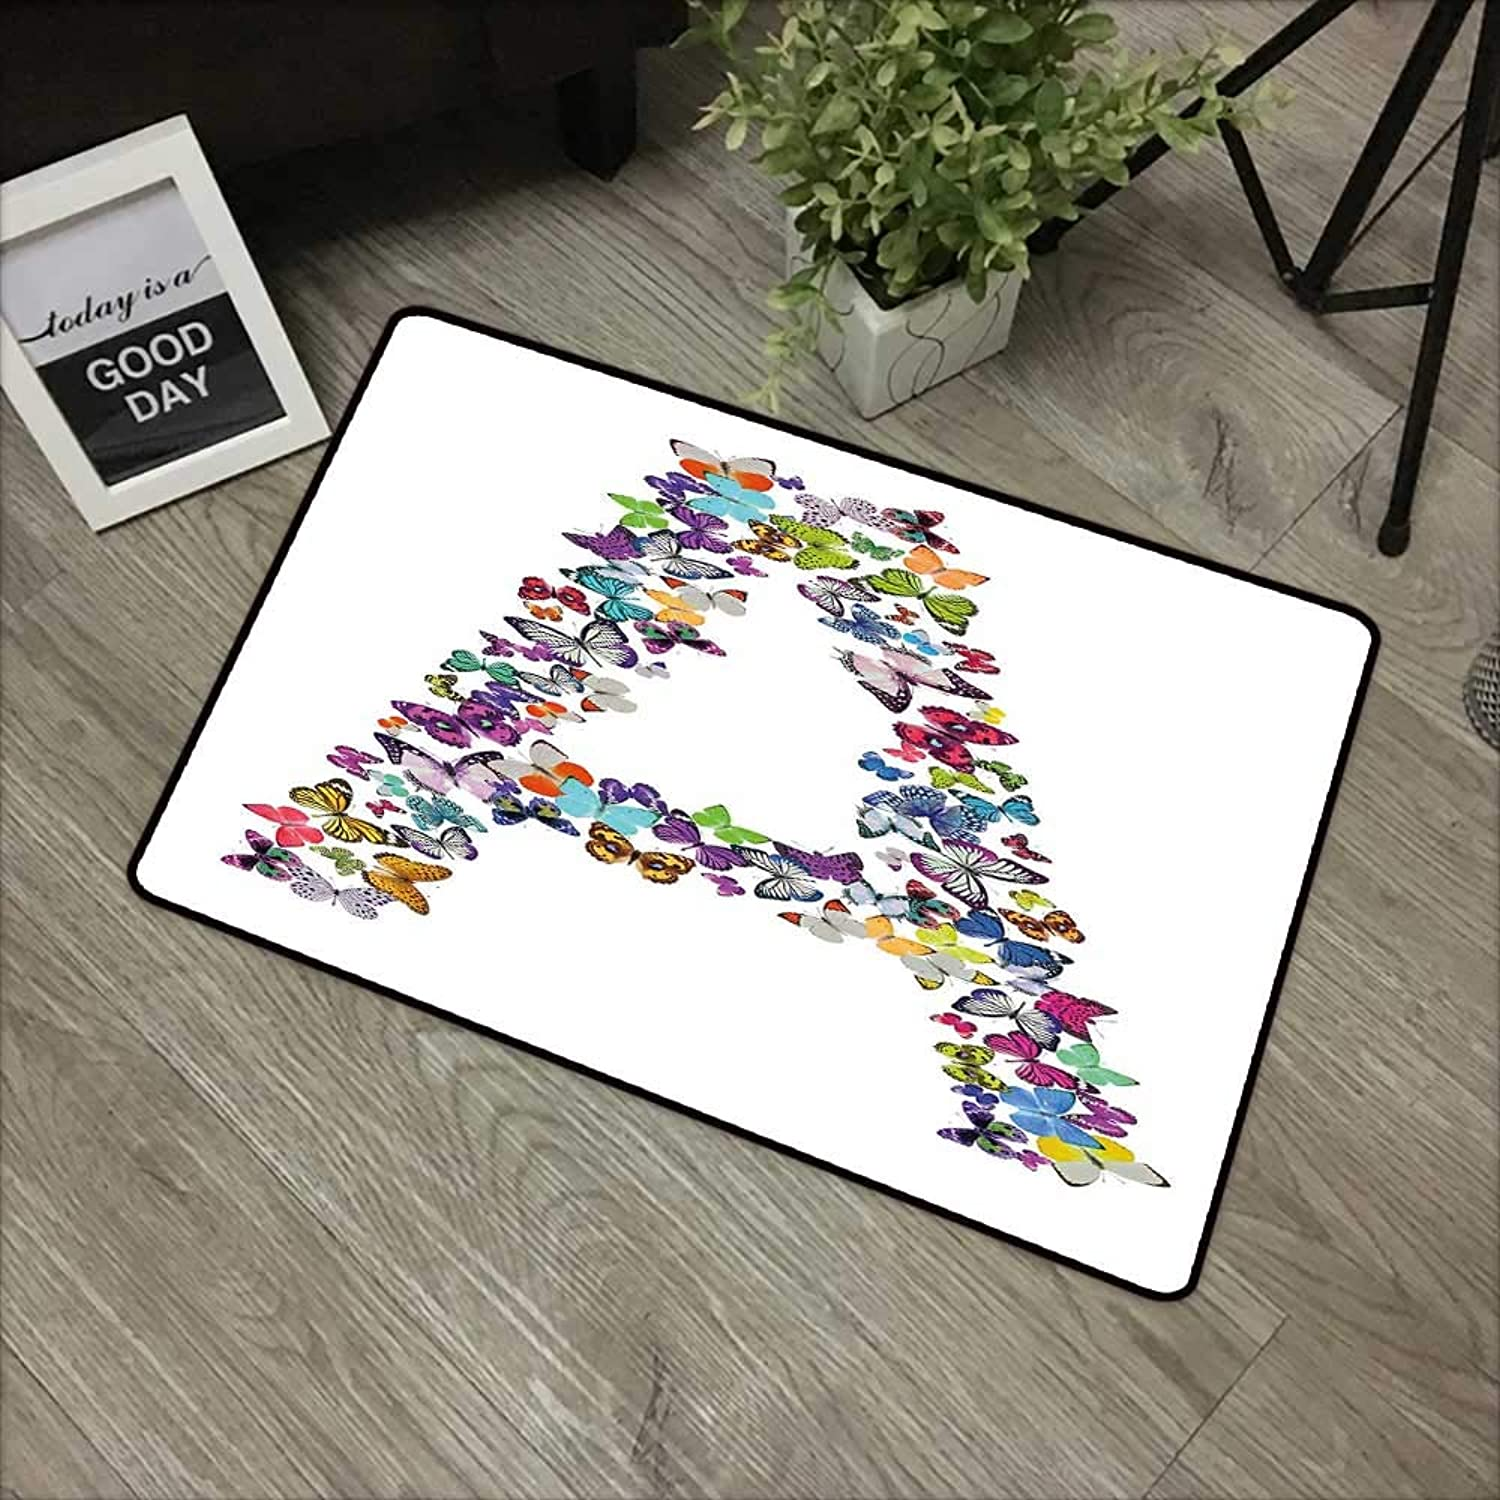 Restaurant mat W24 x L35 INCH Letter A,The First Letter of The Alphabet in Butterfly Form Nature ABC Multiple colors,Multicolor Non-Slip, with Non-Slip Backing,Non-Slip Door Mat Carpet